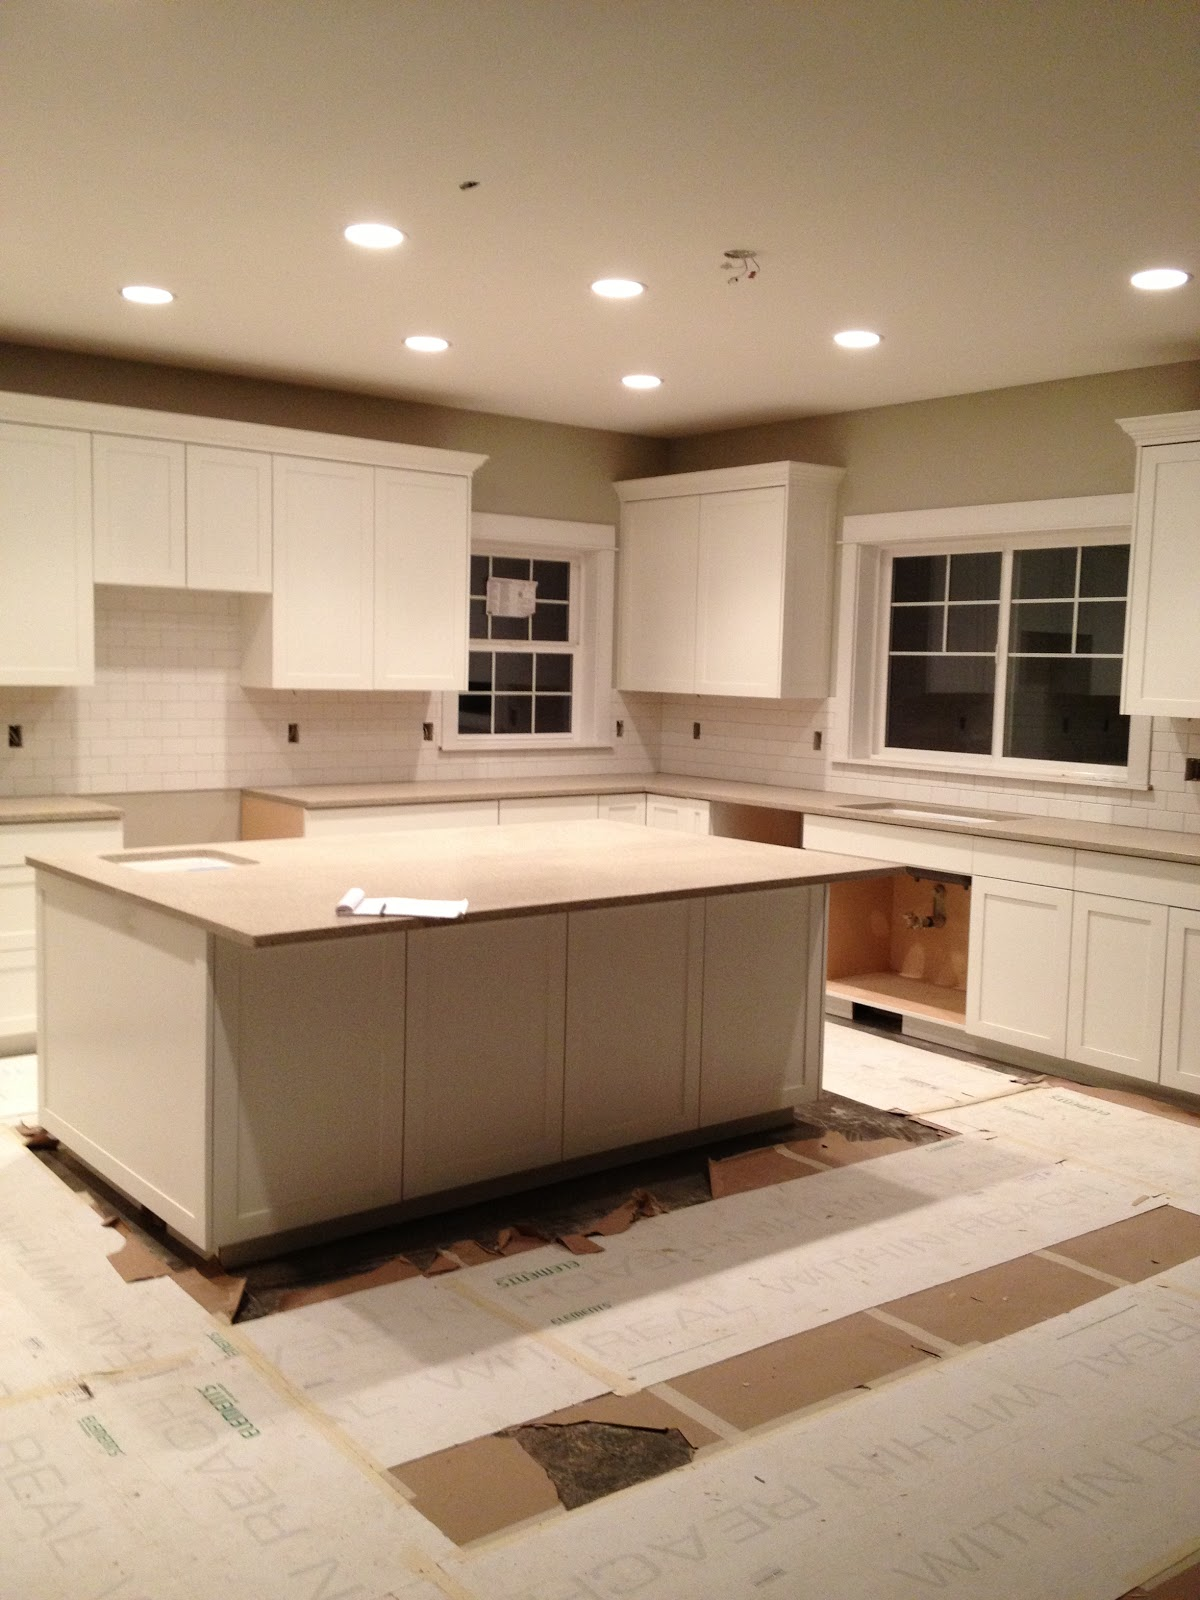 amusing kitchen island counter | Building our dream home, from the ground up: Progress ...